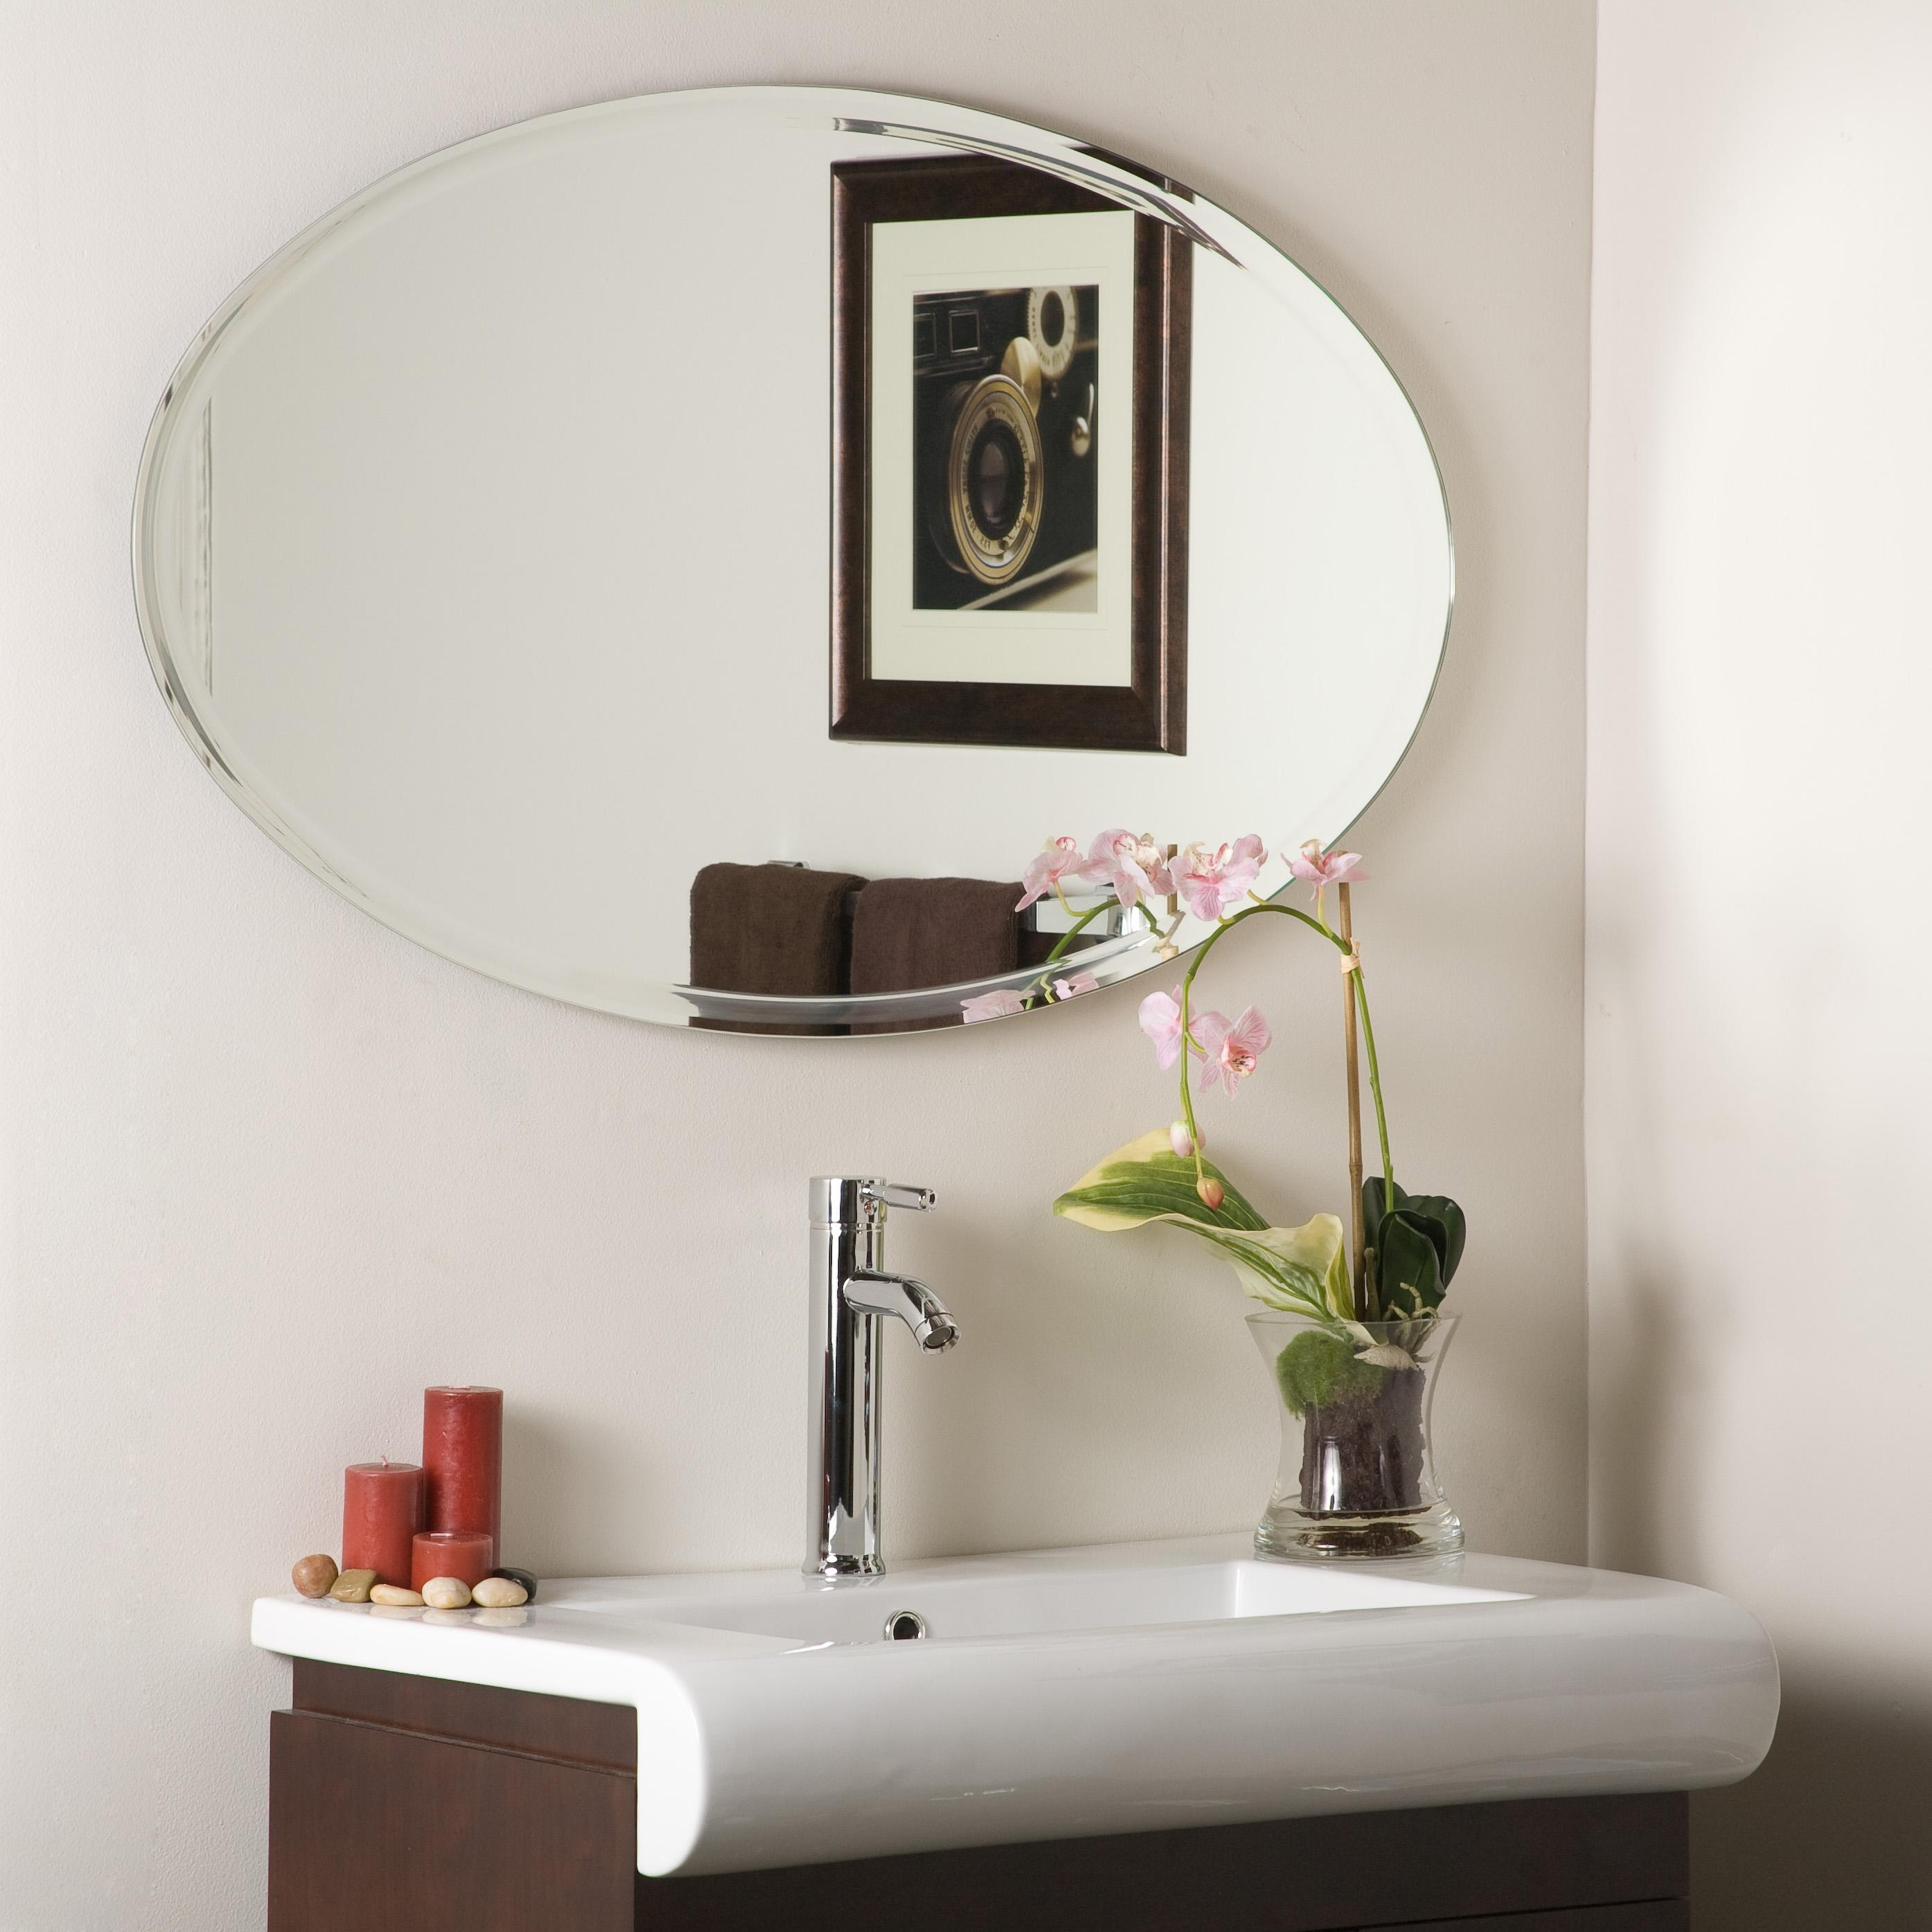 Decor Wall Mirrors With Long Frameless Mirror (Image 2 of 20)